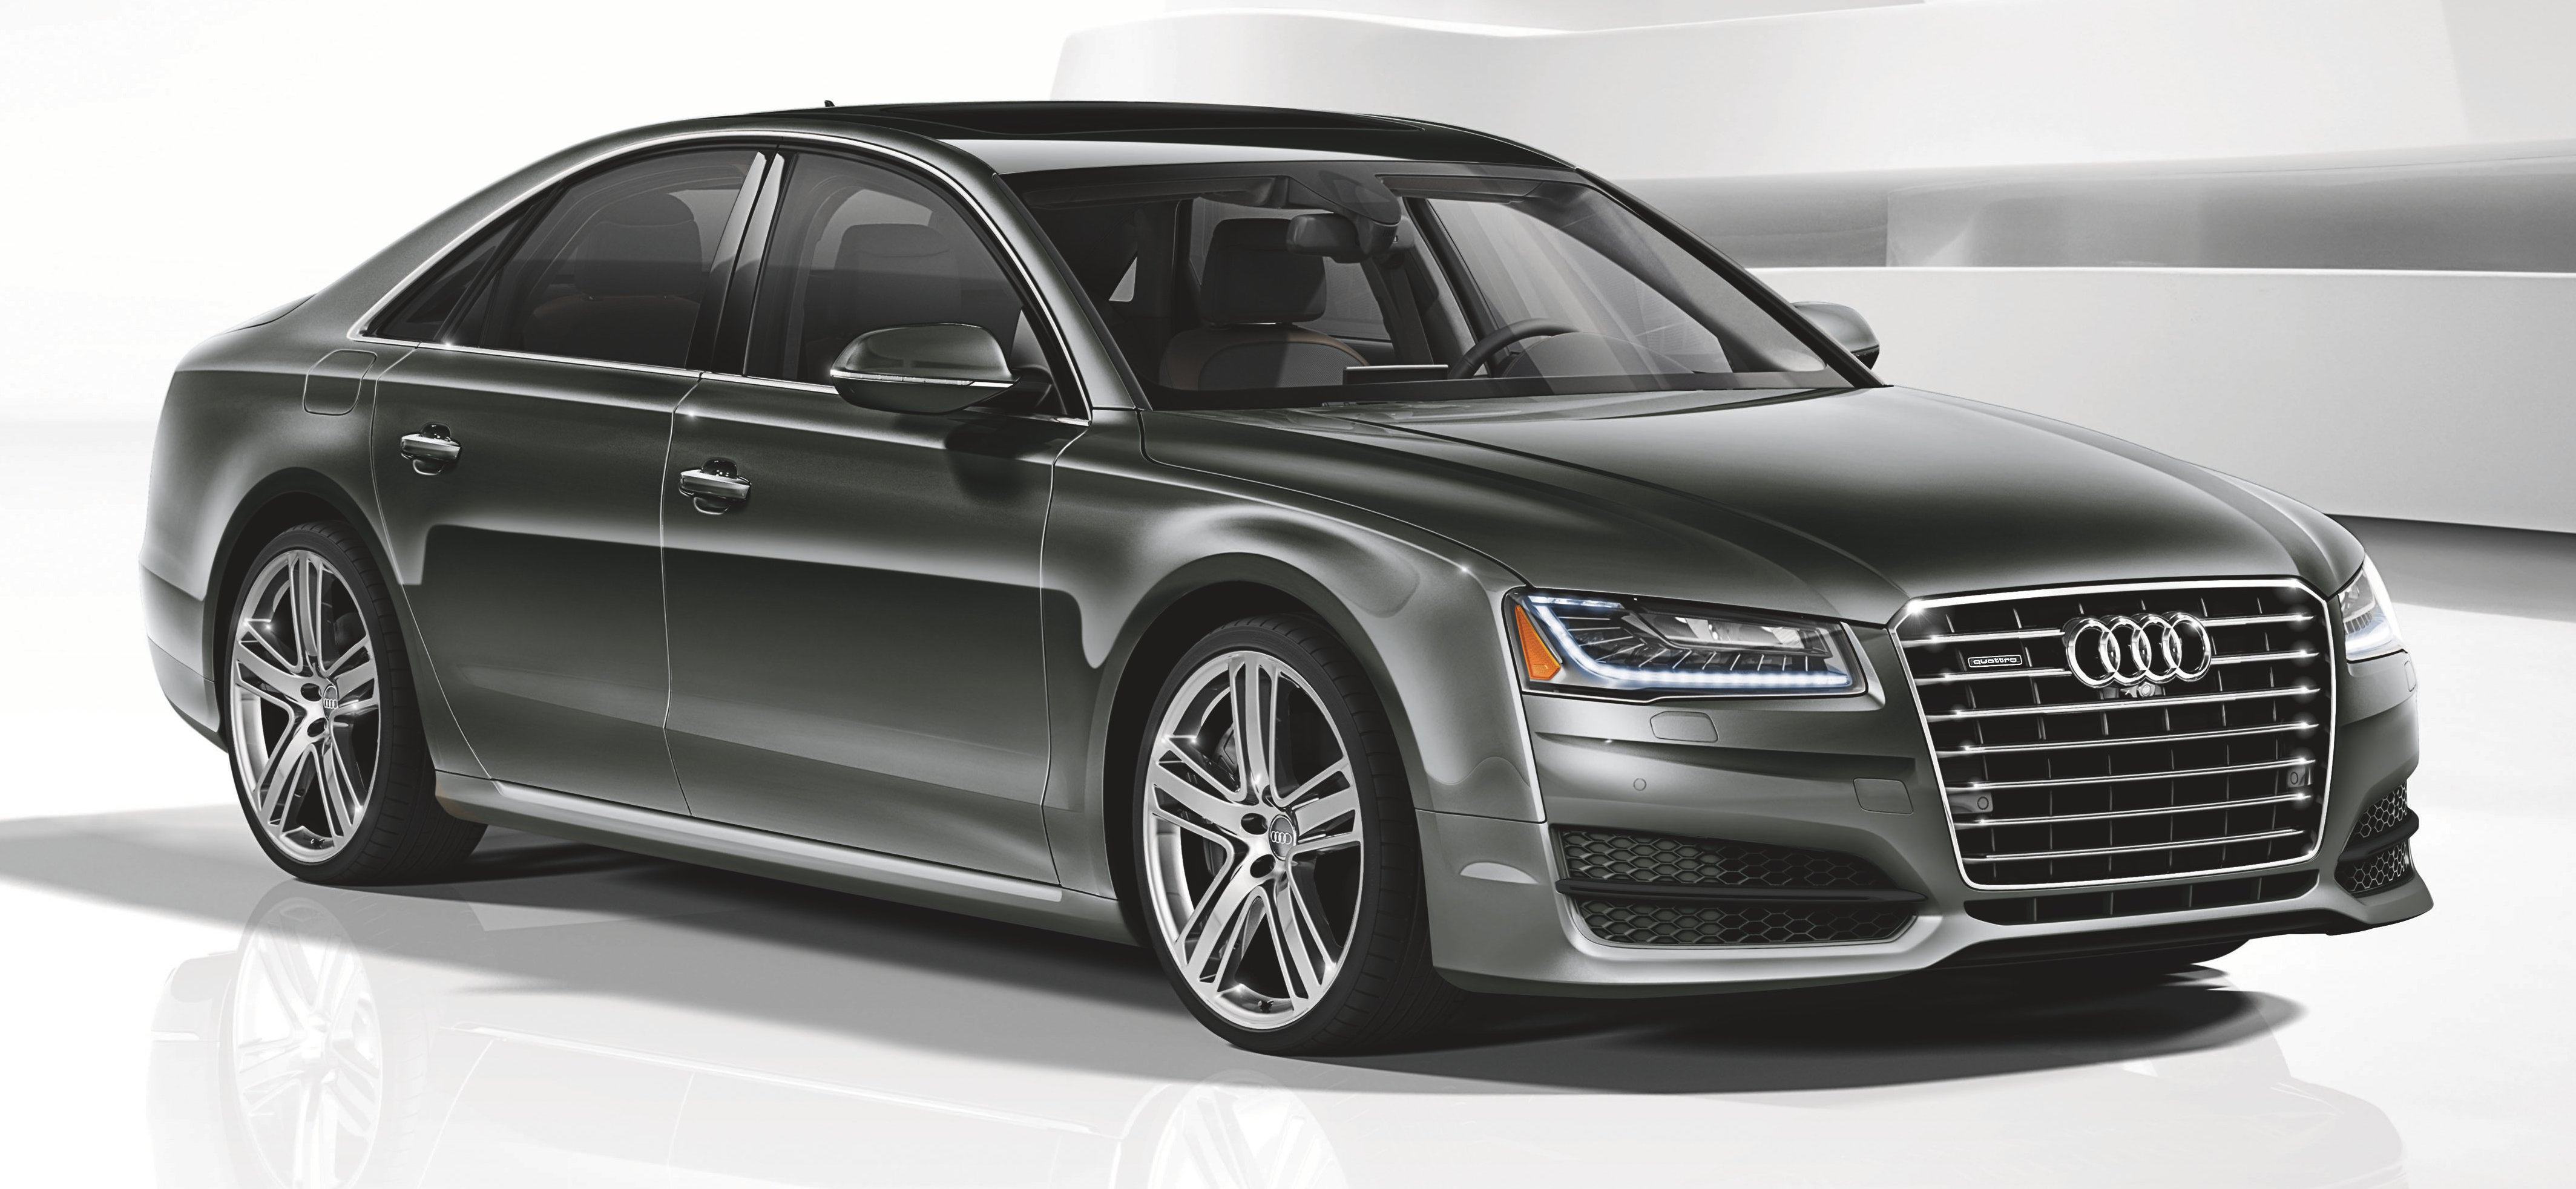 audi a8 l 4 0t sport uprated twin turbo v8 450 hp. Black Bedroom Furniture Sets. Home Design Ideas